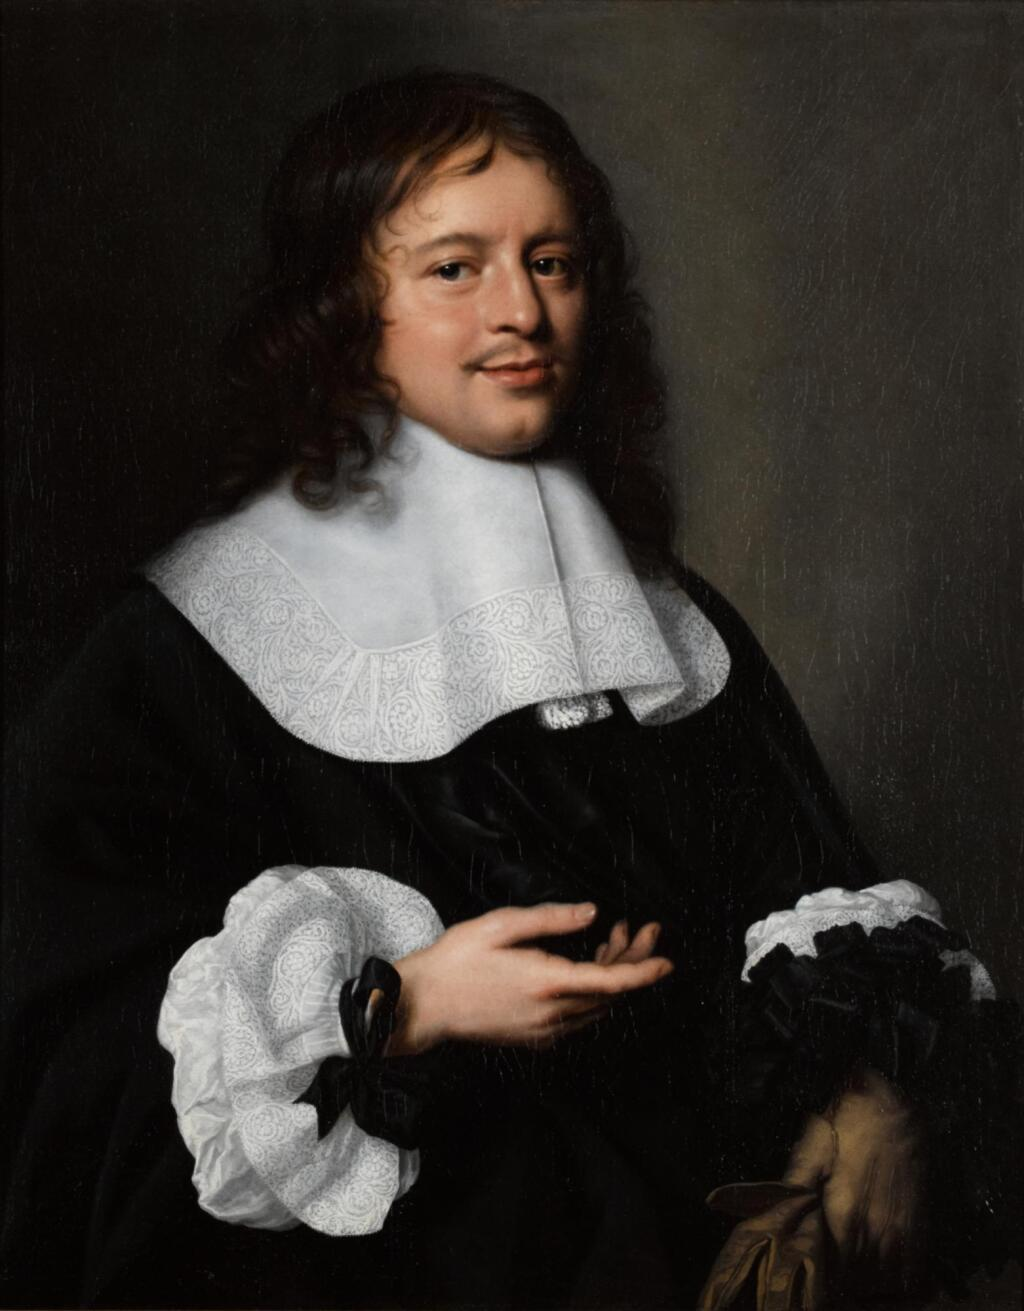 PIETER NASON | A portrait of a gentleman, half-length, with a white collar and cuffs and holding a pair of gloves